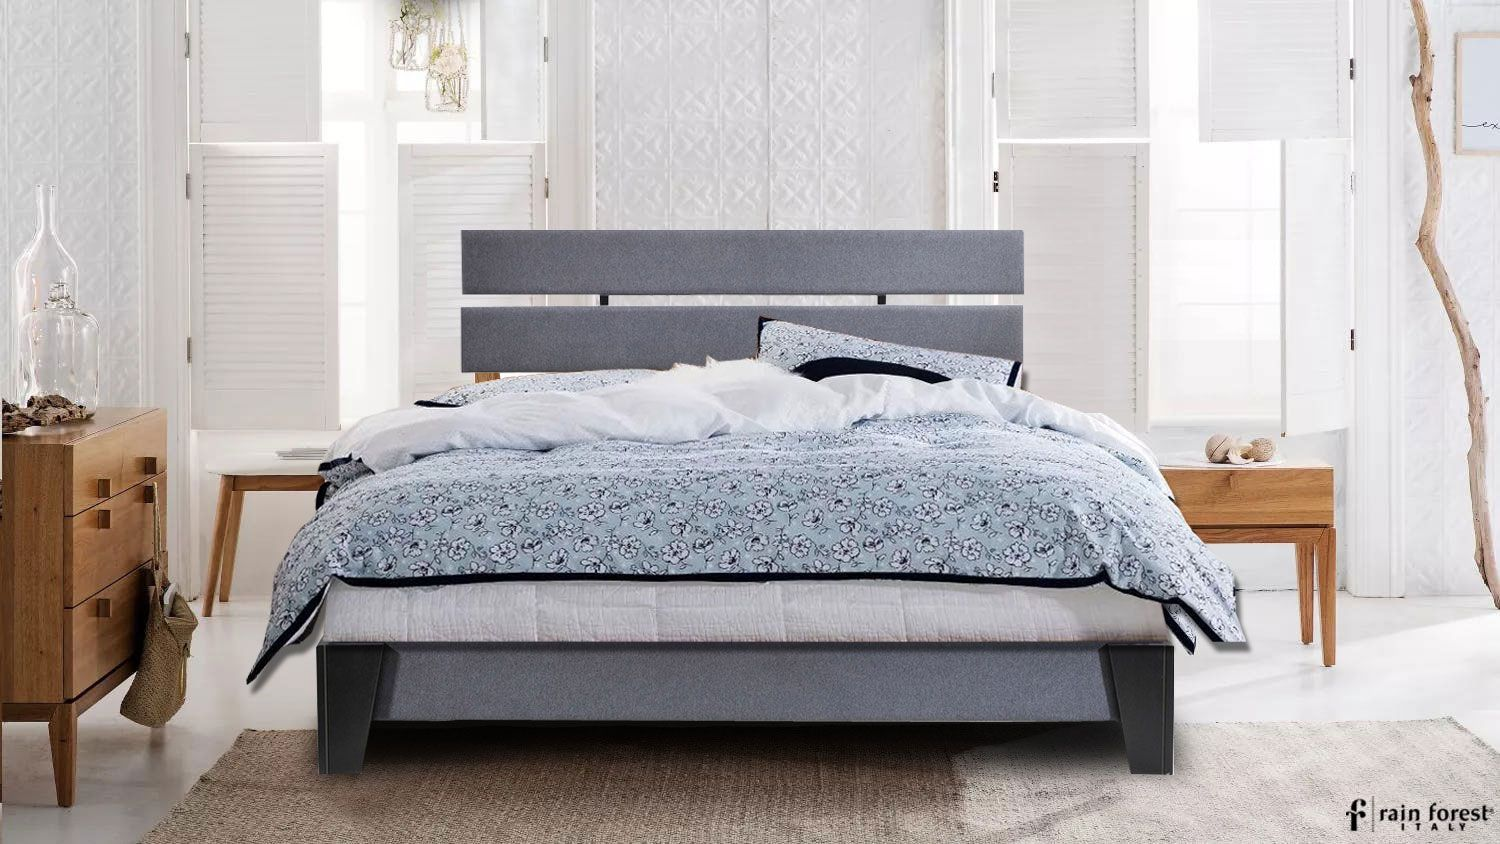 Bed Beds Bed Design Bed Designs Bed Ideas Beds Ideas Bedroom